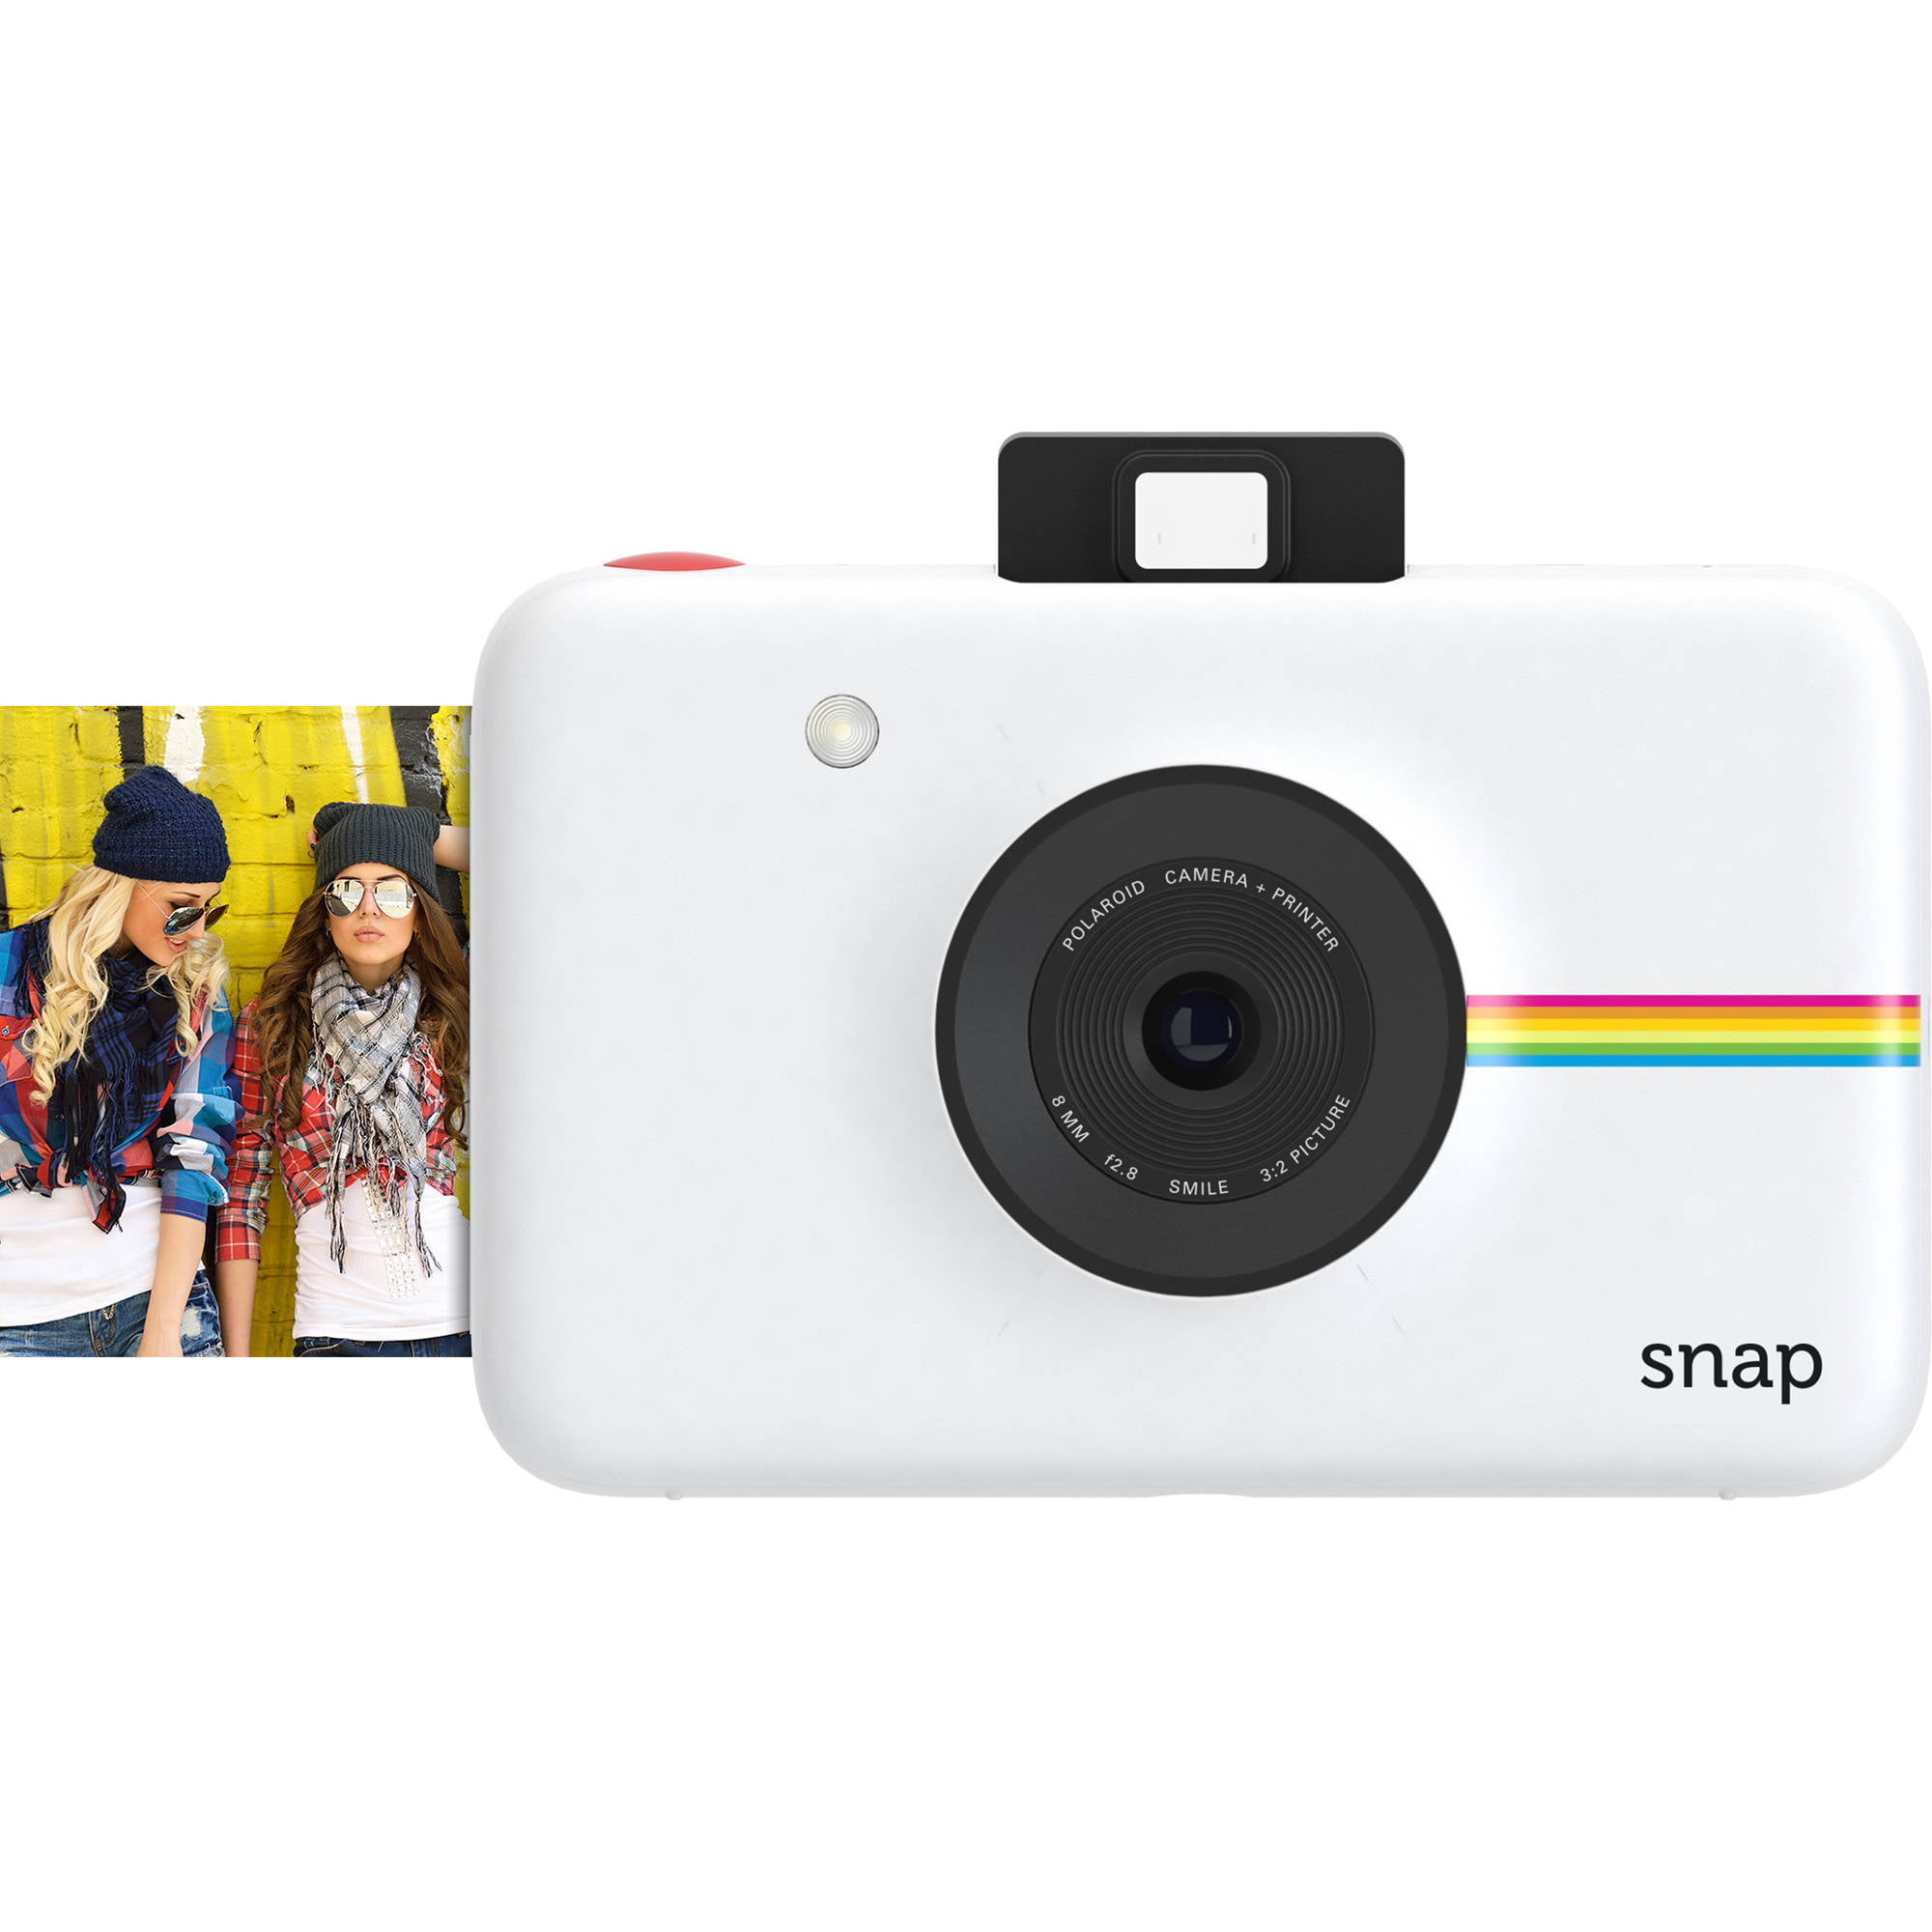 Polaroid Snap Instant Digital Camera - Walmart.com